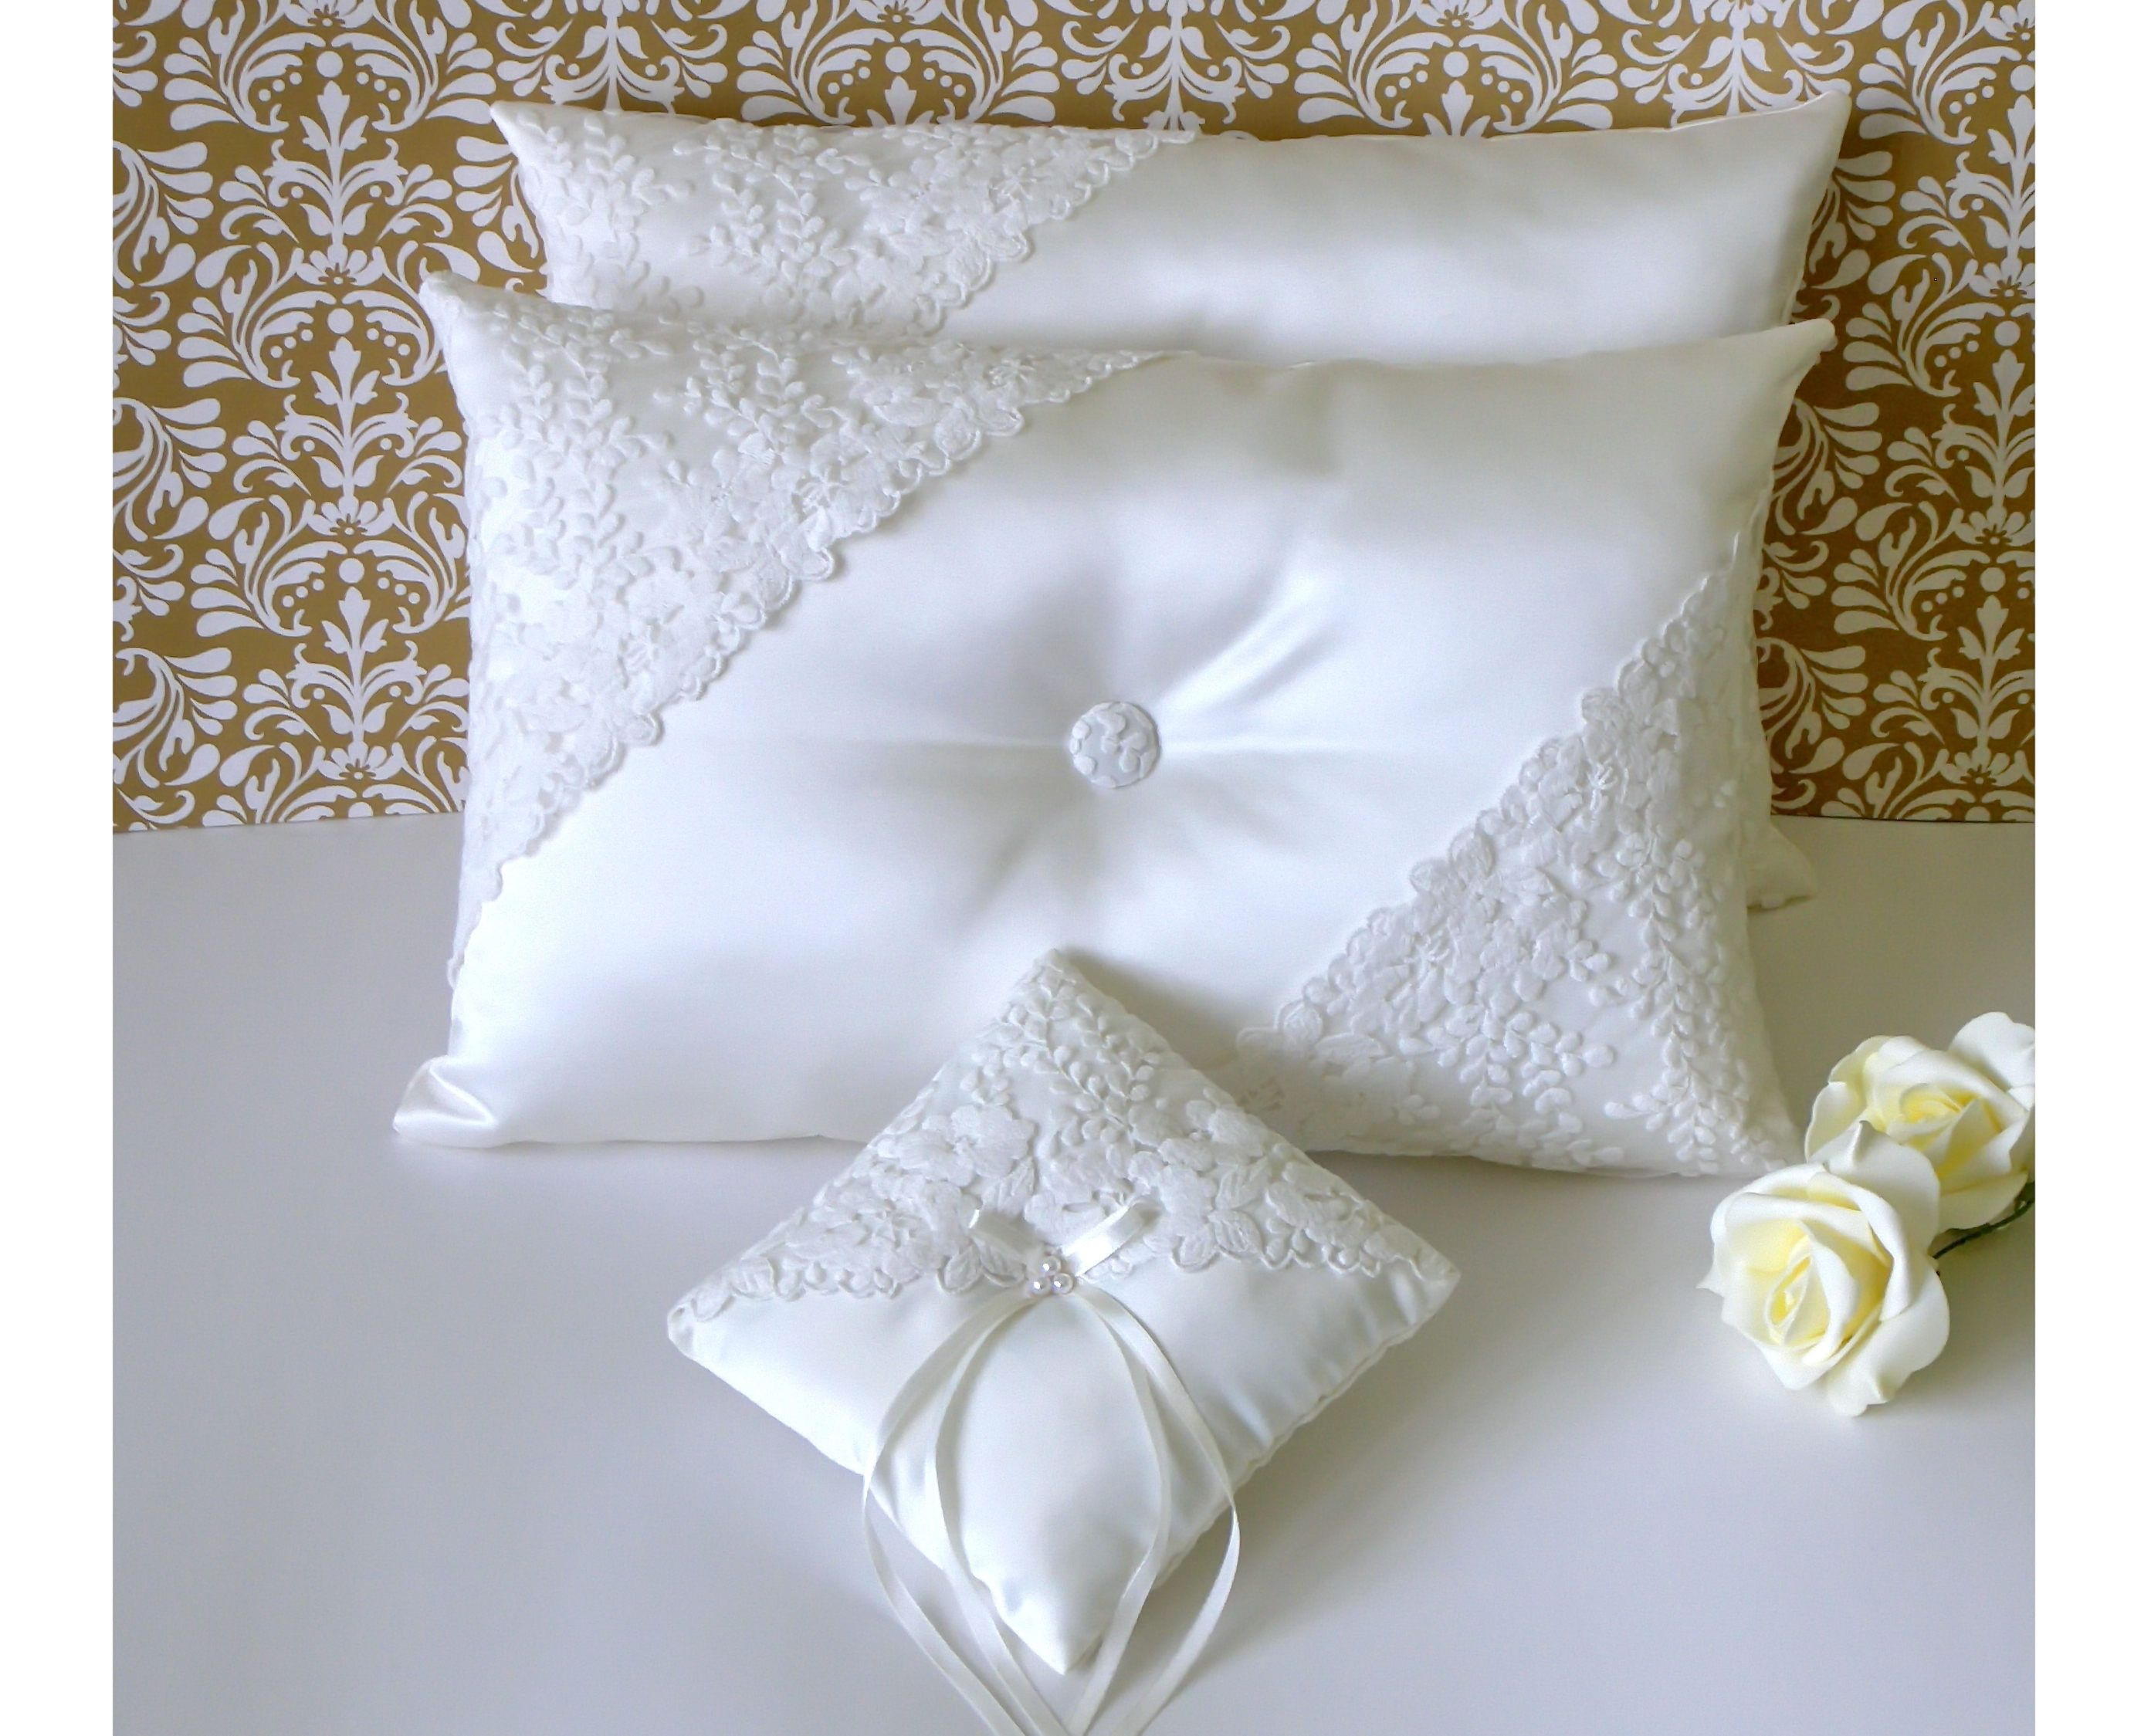 Set of ivory wedding kneeling pillows and a matching ring pillow